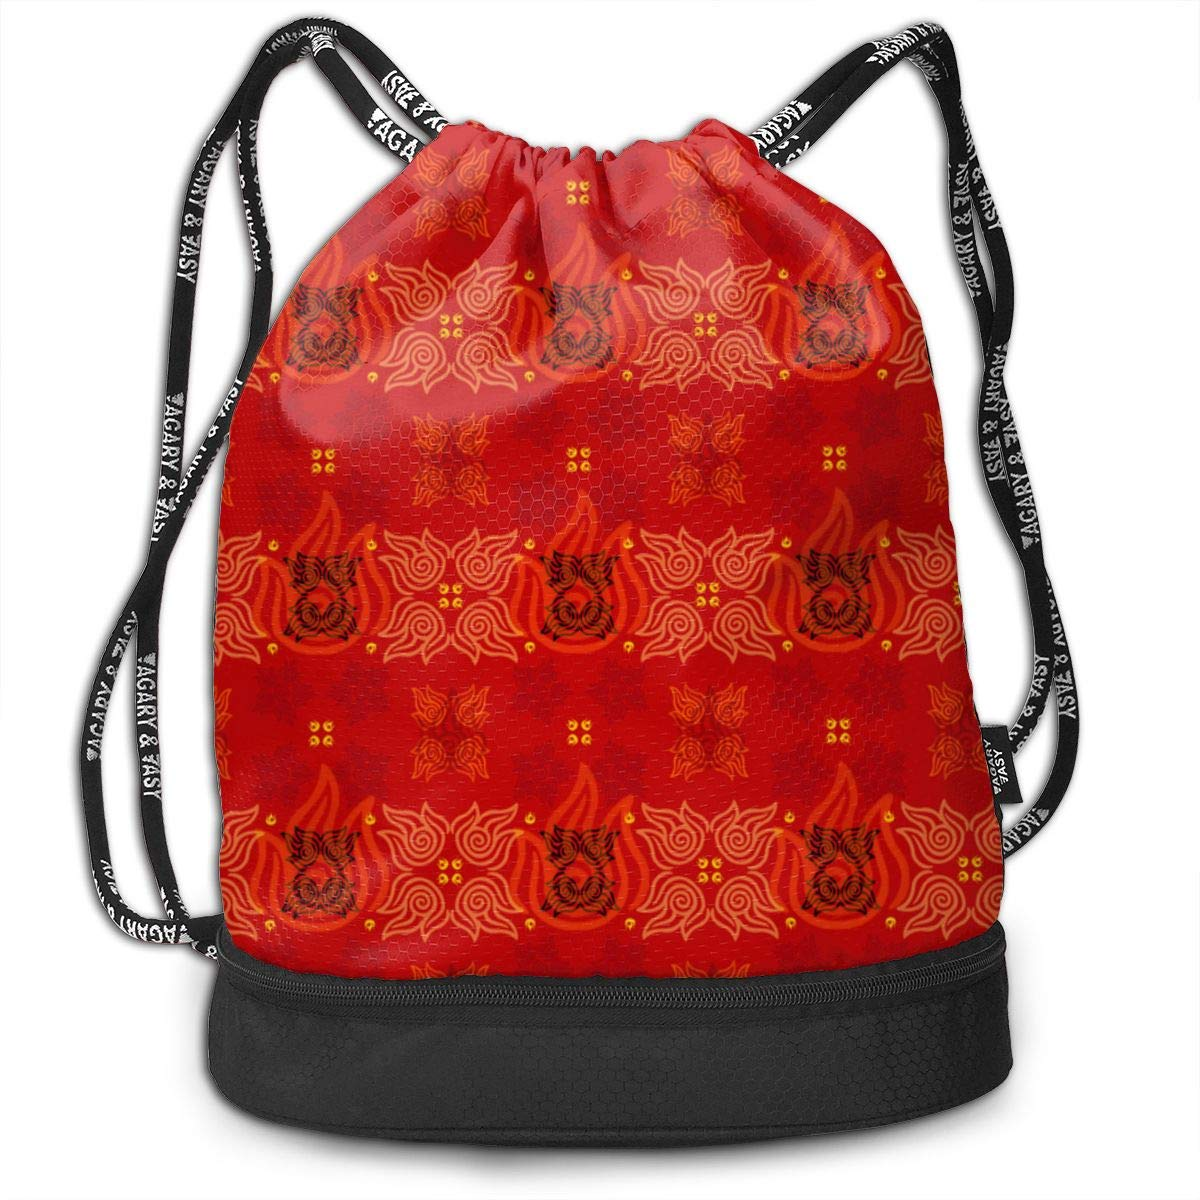 Avatar Fire Nation Drawstring Backpack Sports Athletic Gym Cinch Sack String Storage Bags for Hiking Travel Beach